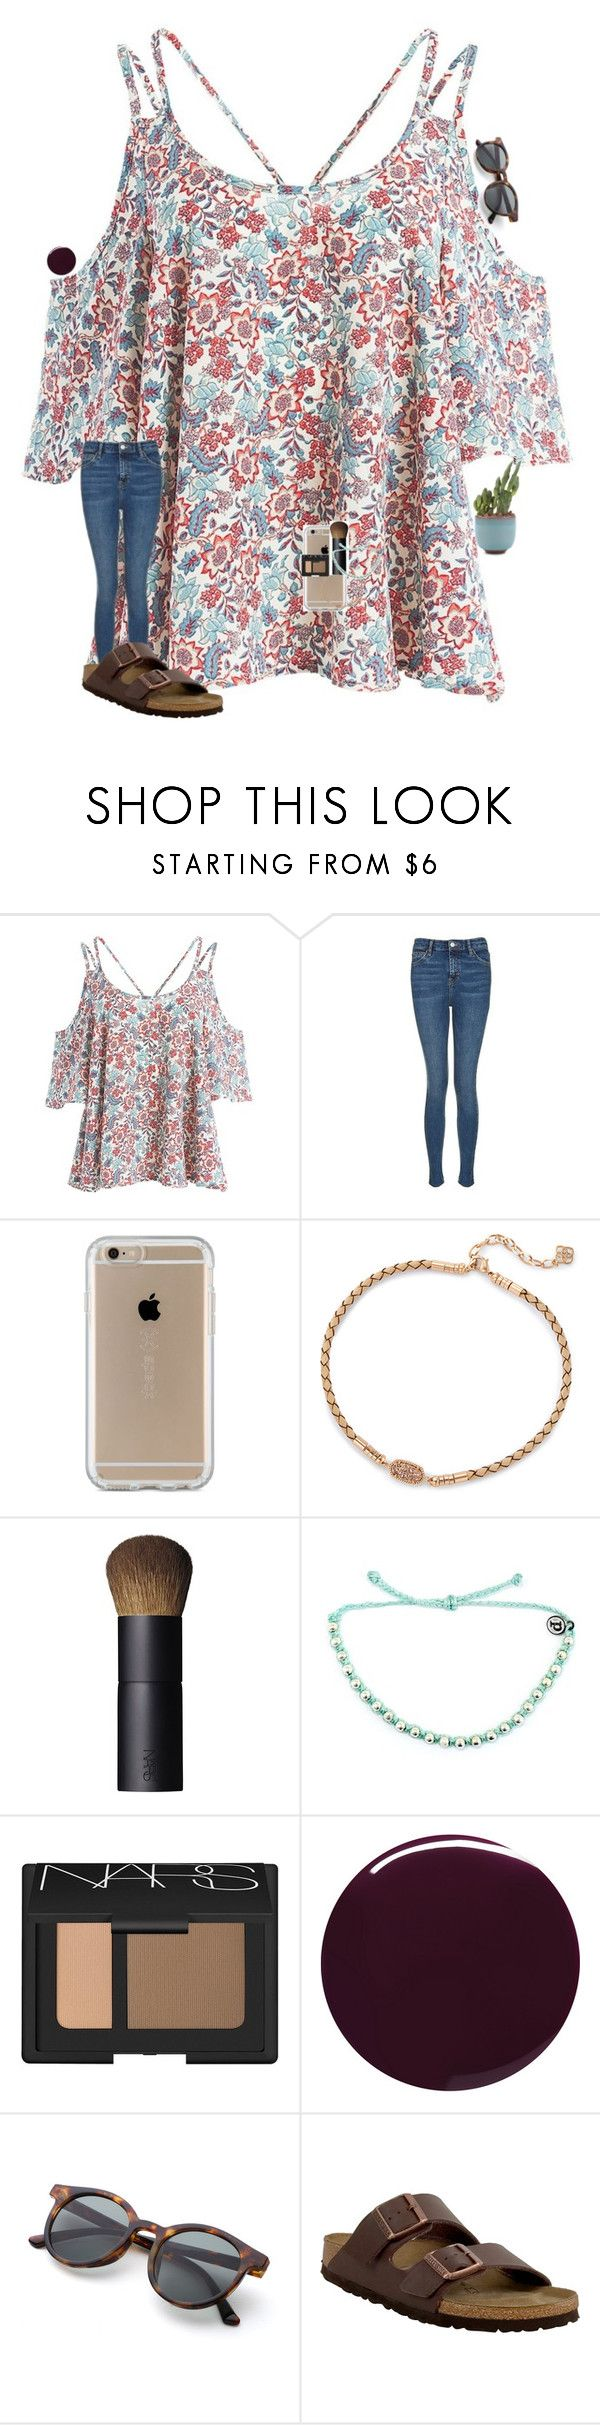 """""""••"""" by mackenzielacy814 ❤ liked on Polyvore featuring Sans Souci, Topshop, Speck, Kendra Scott, NARS Cosmetics, Pura Vida, Burberry and Birkenstock"""